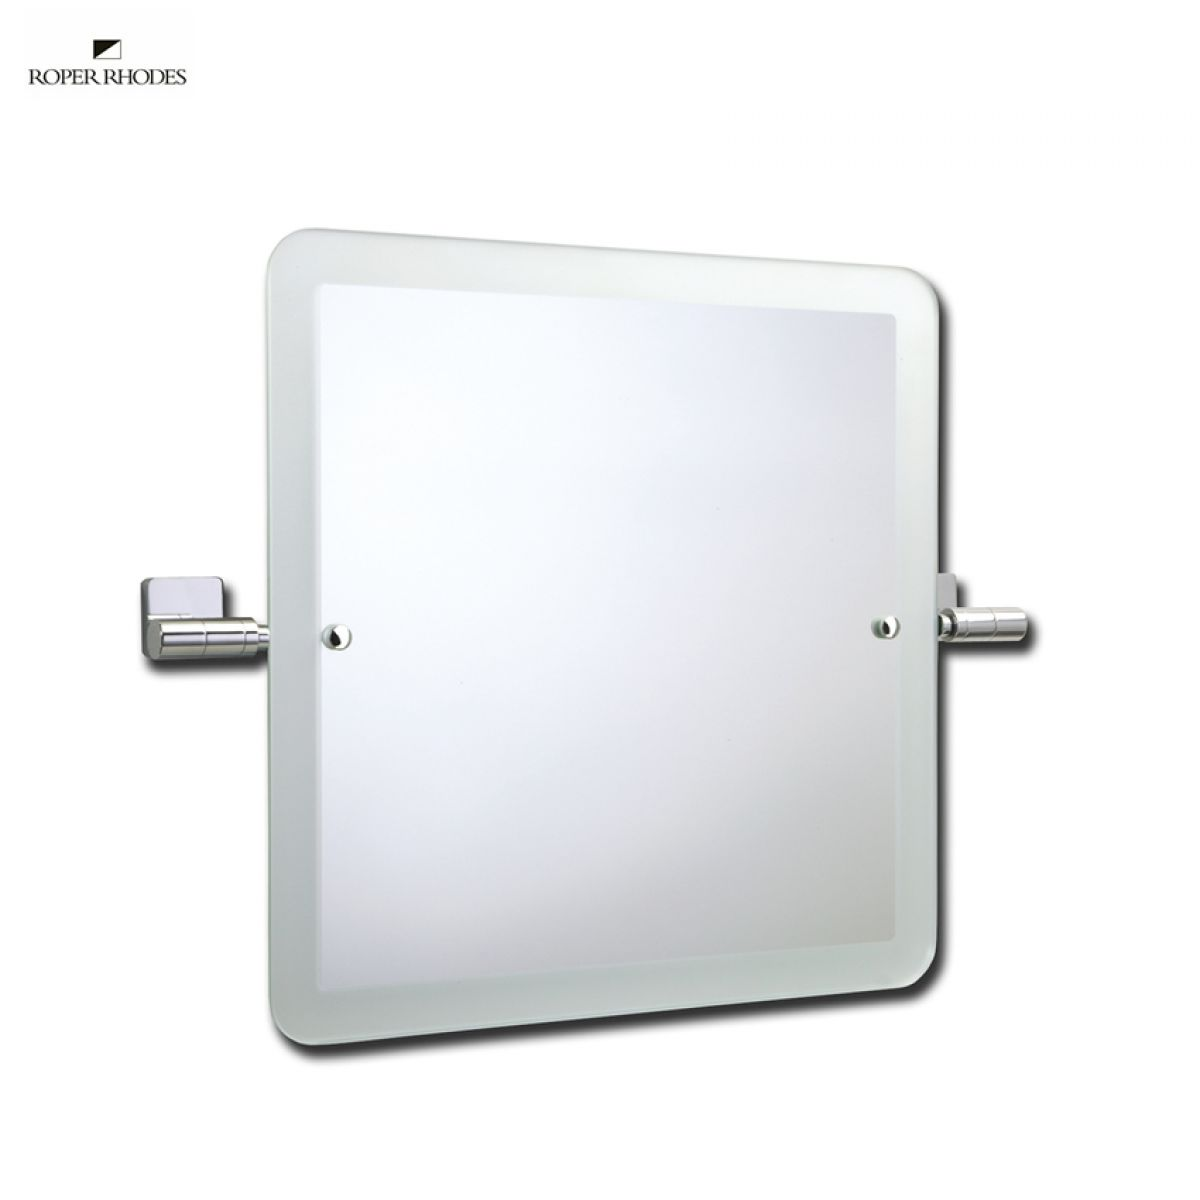 Roper Rhodes Glide Wall Mounted Bathroom Mirror Ukbathrooms